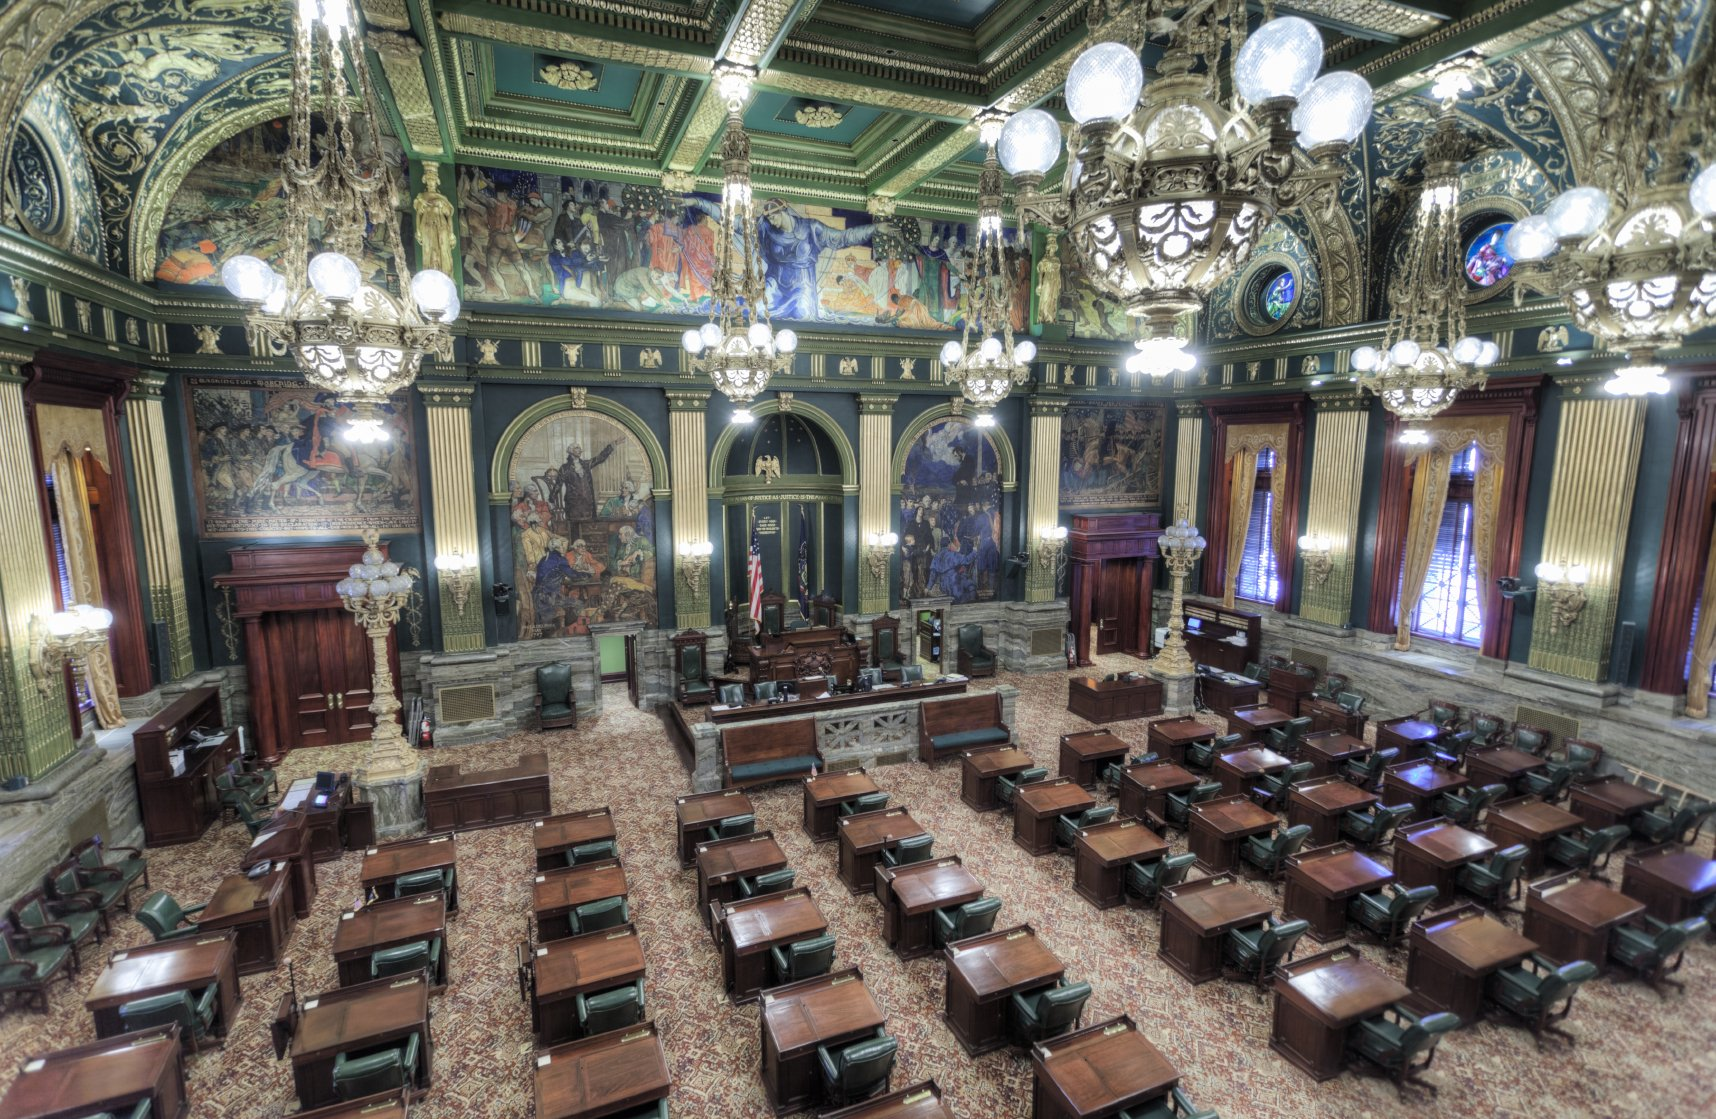 The ornate Senate chamber features murals by Violet Oakley...